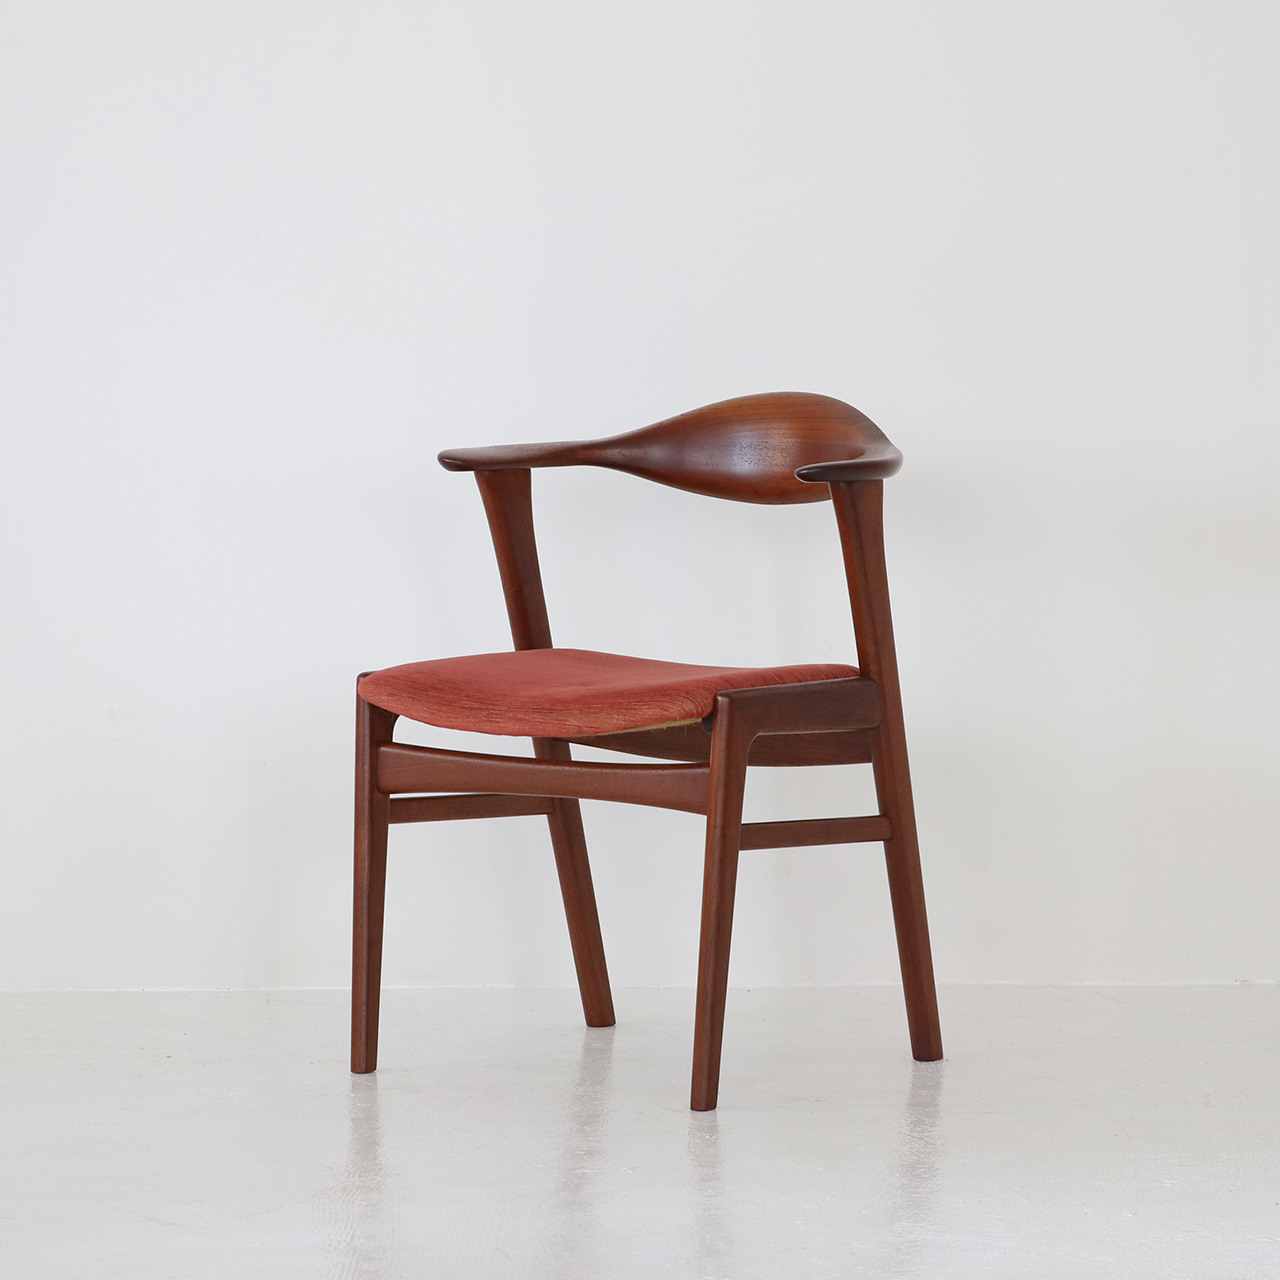 Half arm chair / Erik Kirkegaard